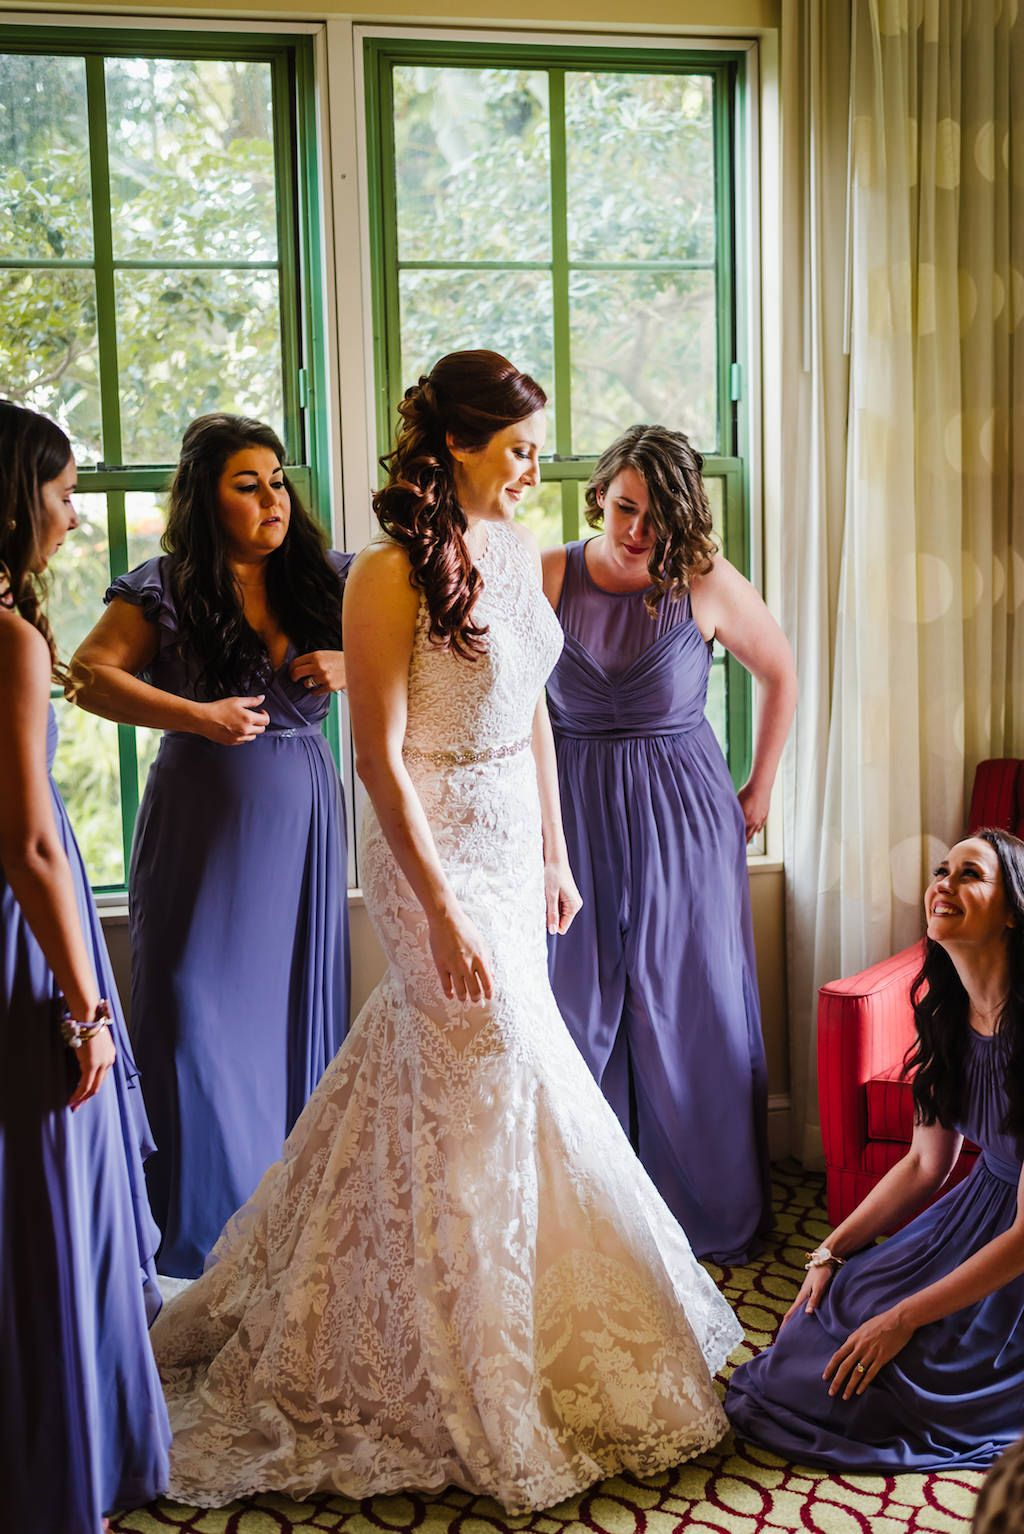 Bride Getting Ready Portrait, Bridesmaids in Dusty Purple Dessy Dresses, Bride in Belted Trumpet Eddy K Lace Wedding Dress